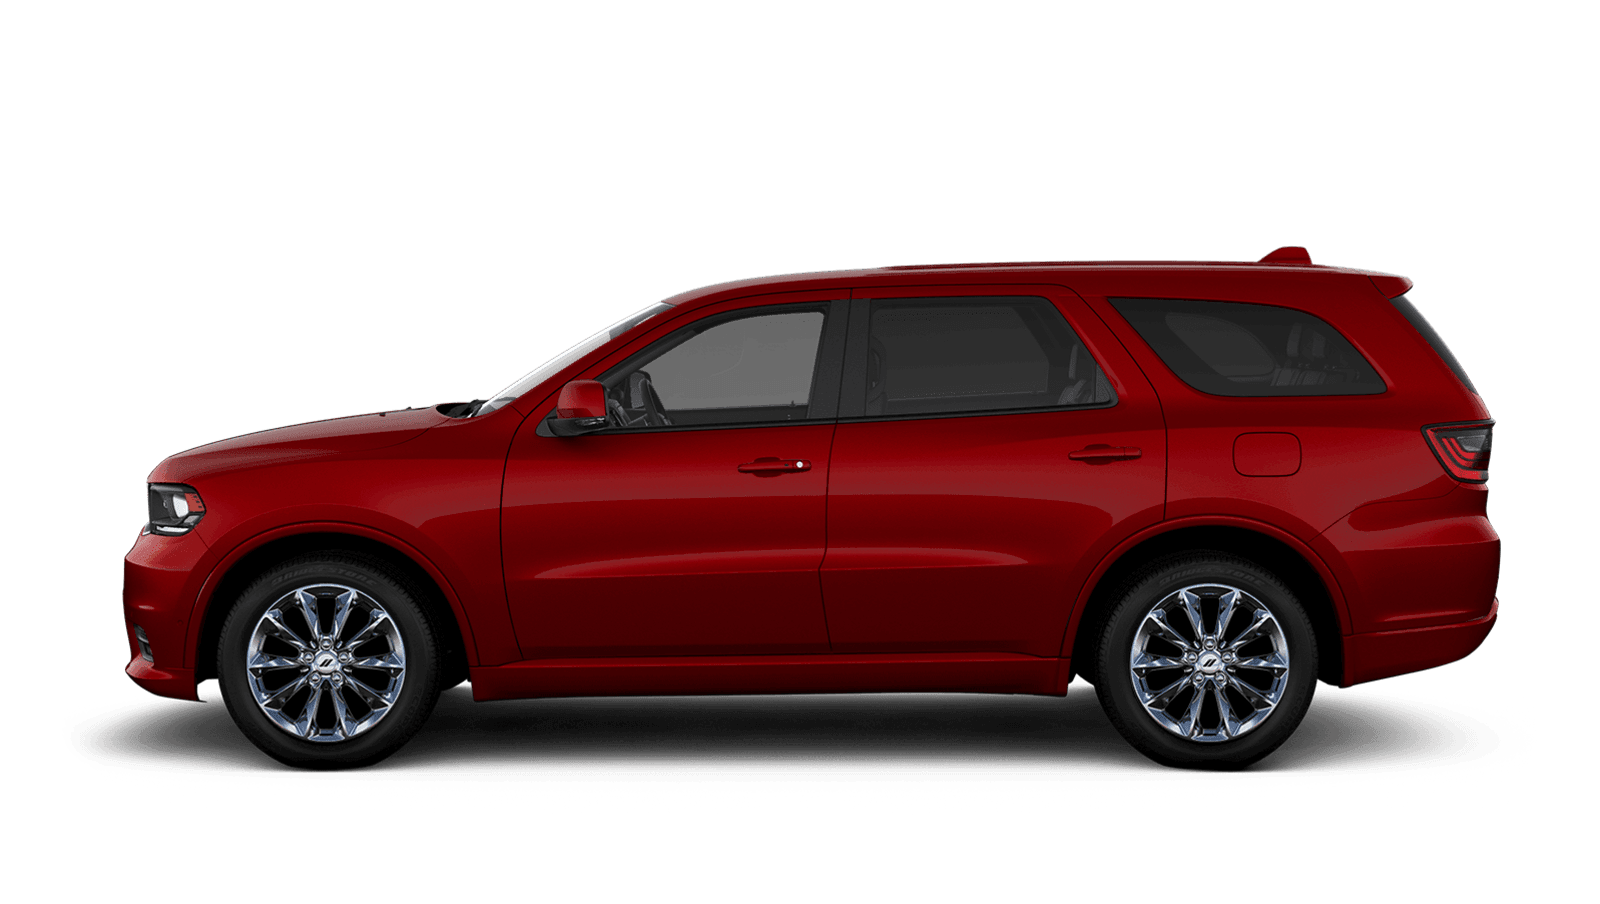 2021 Dodge Durango sideview with 20-inch Platinum Chrome aluminum wheels